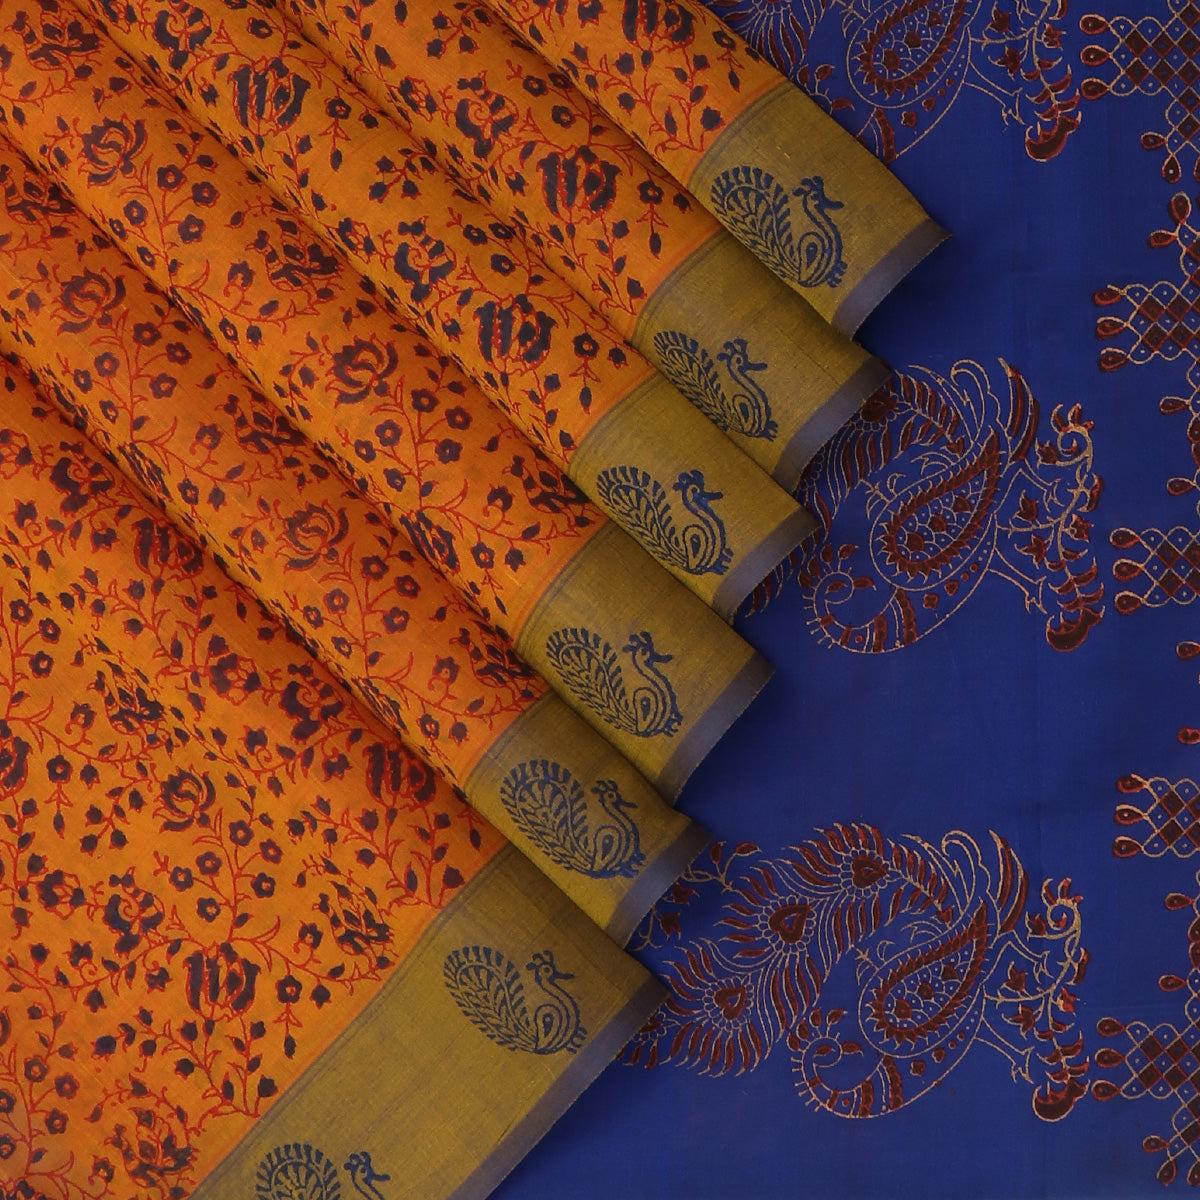 Printed Silk Cotton Saree Honey Color and Indigo blue with Annam border